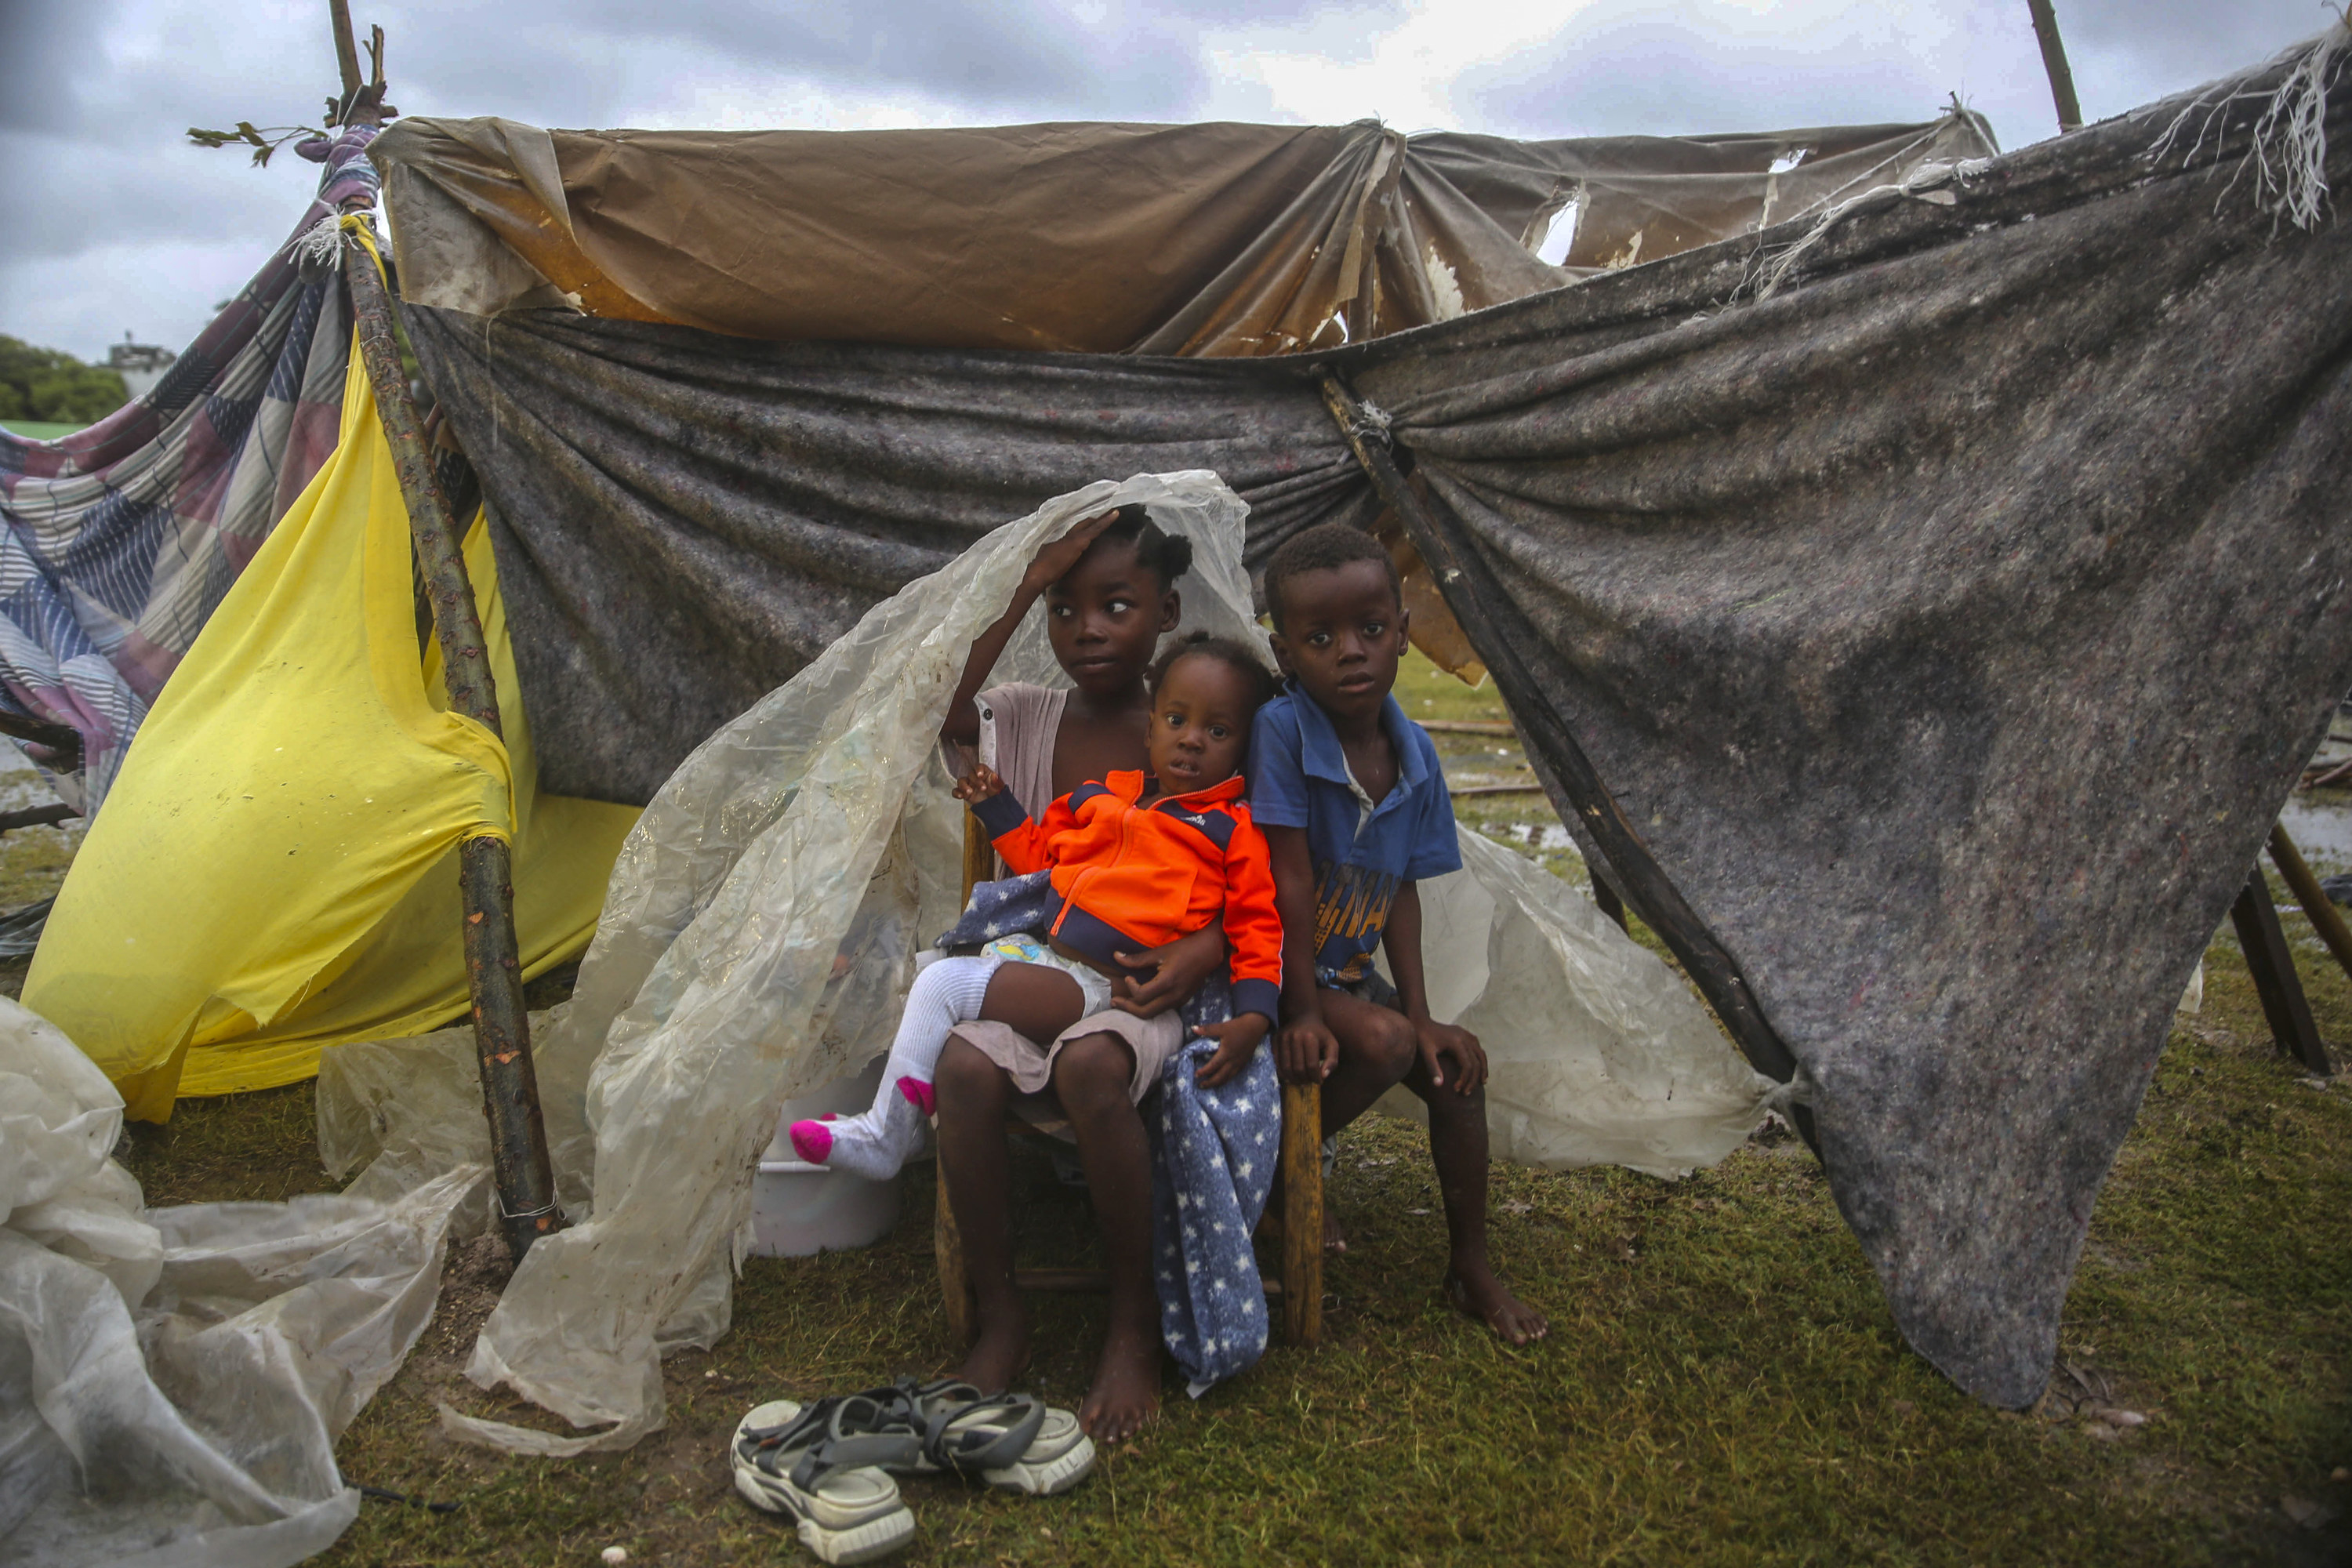 Three young children, one a toddler, huddle together under a tent